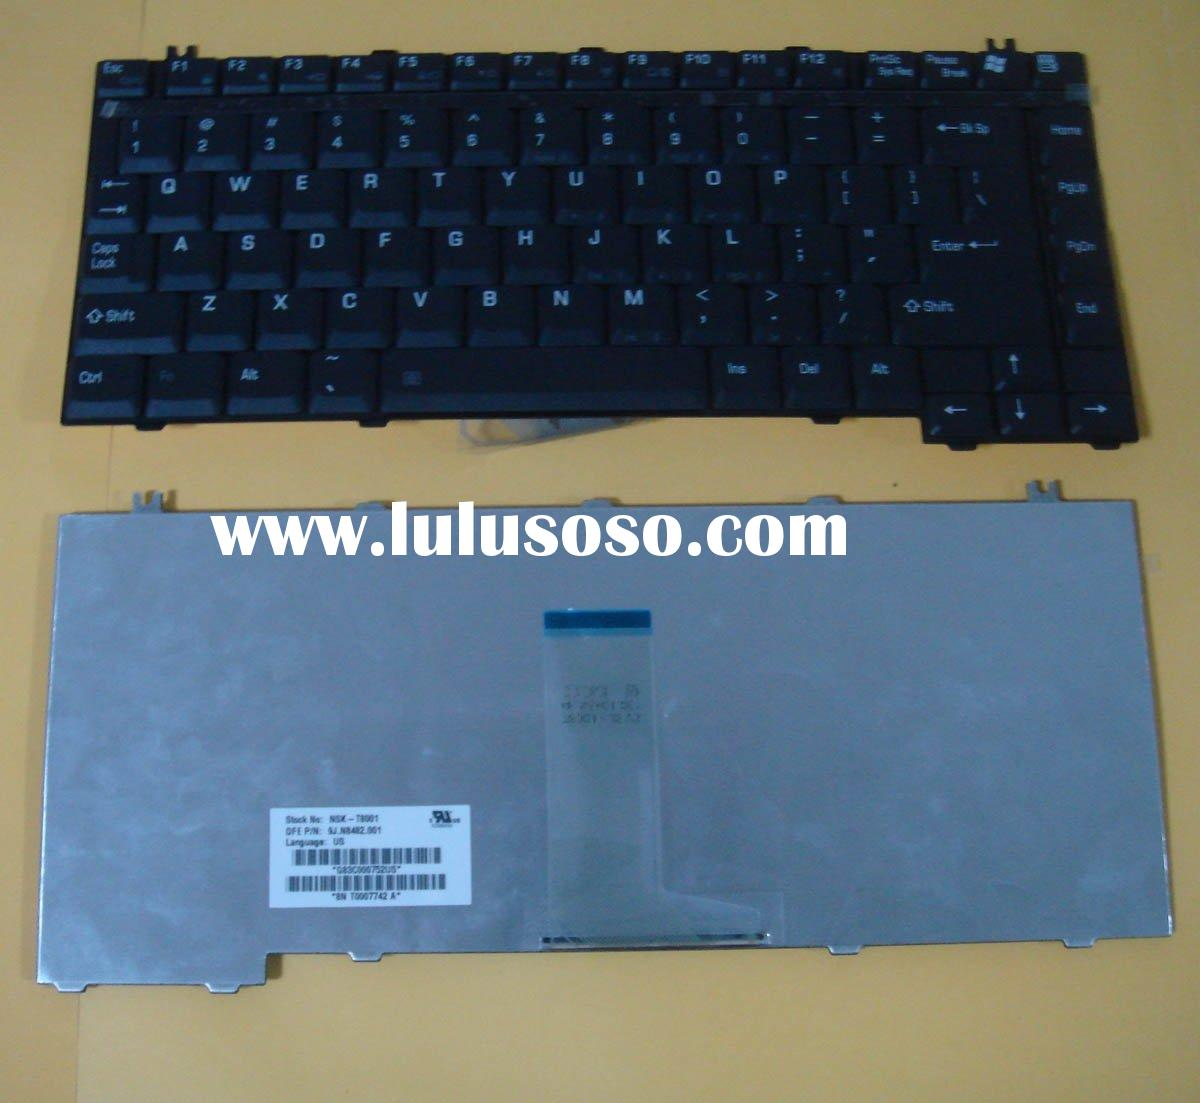 Laptop Keyboard for Toshiba Satellite Pro L300 L305 - V000120250